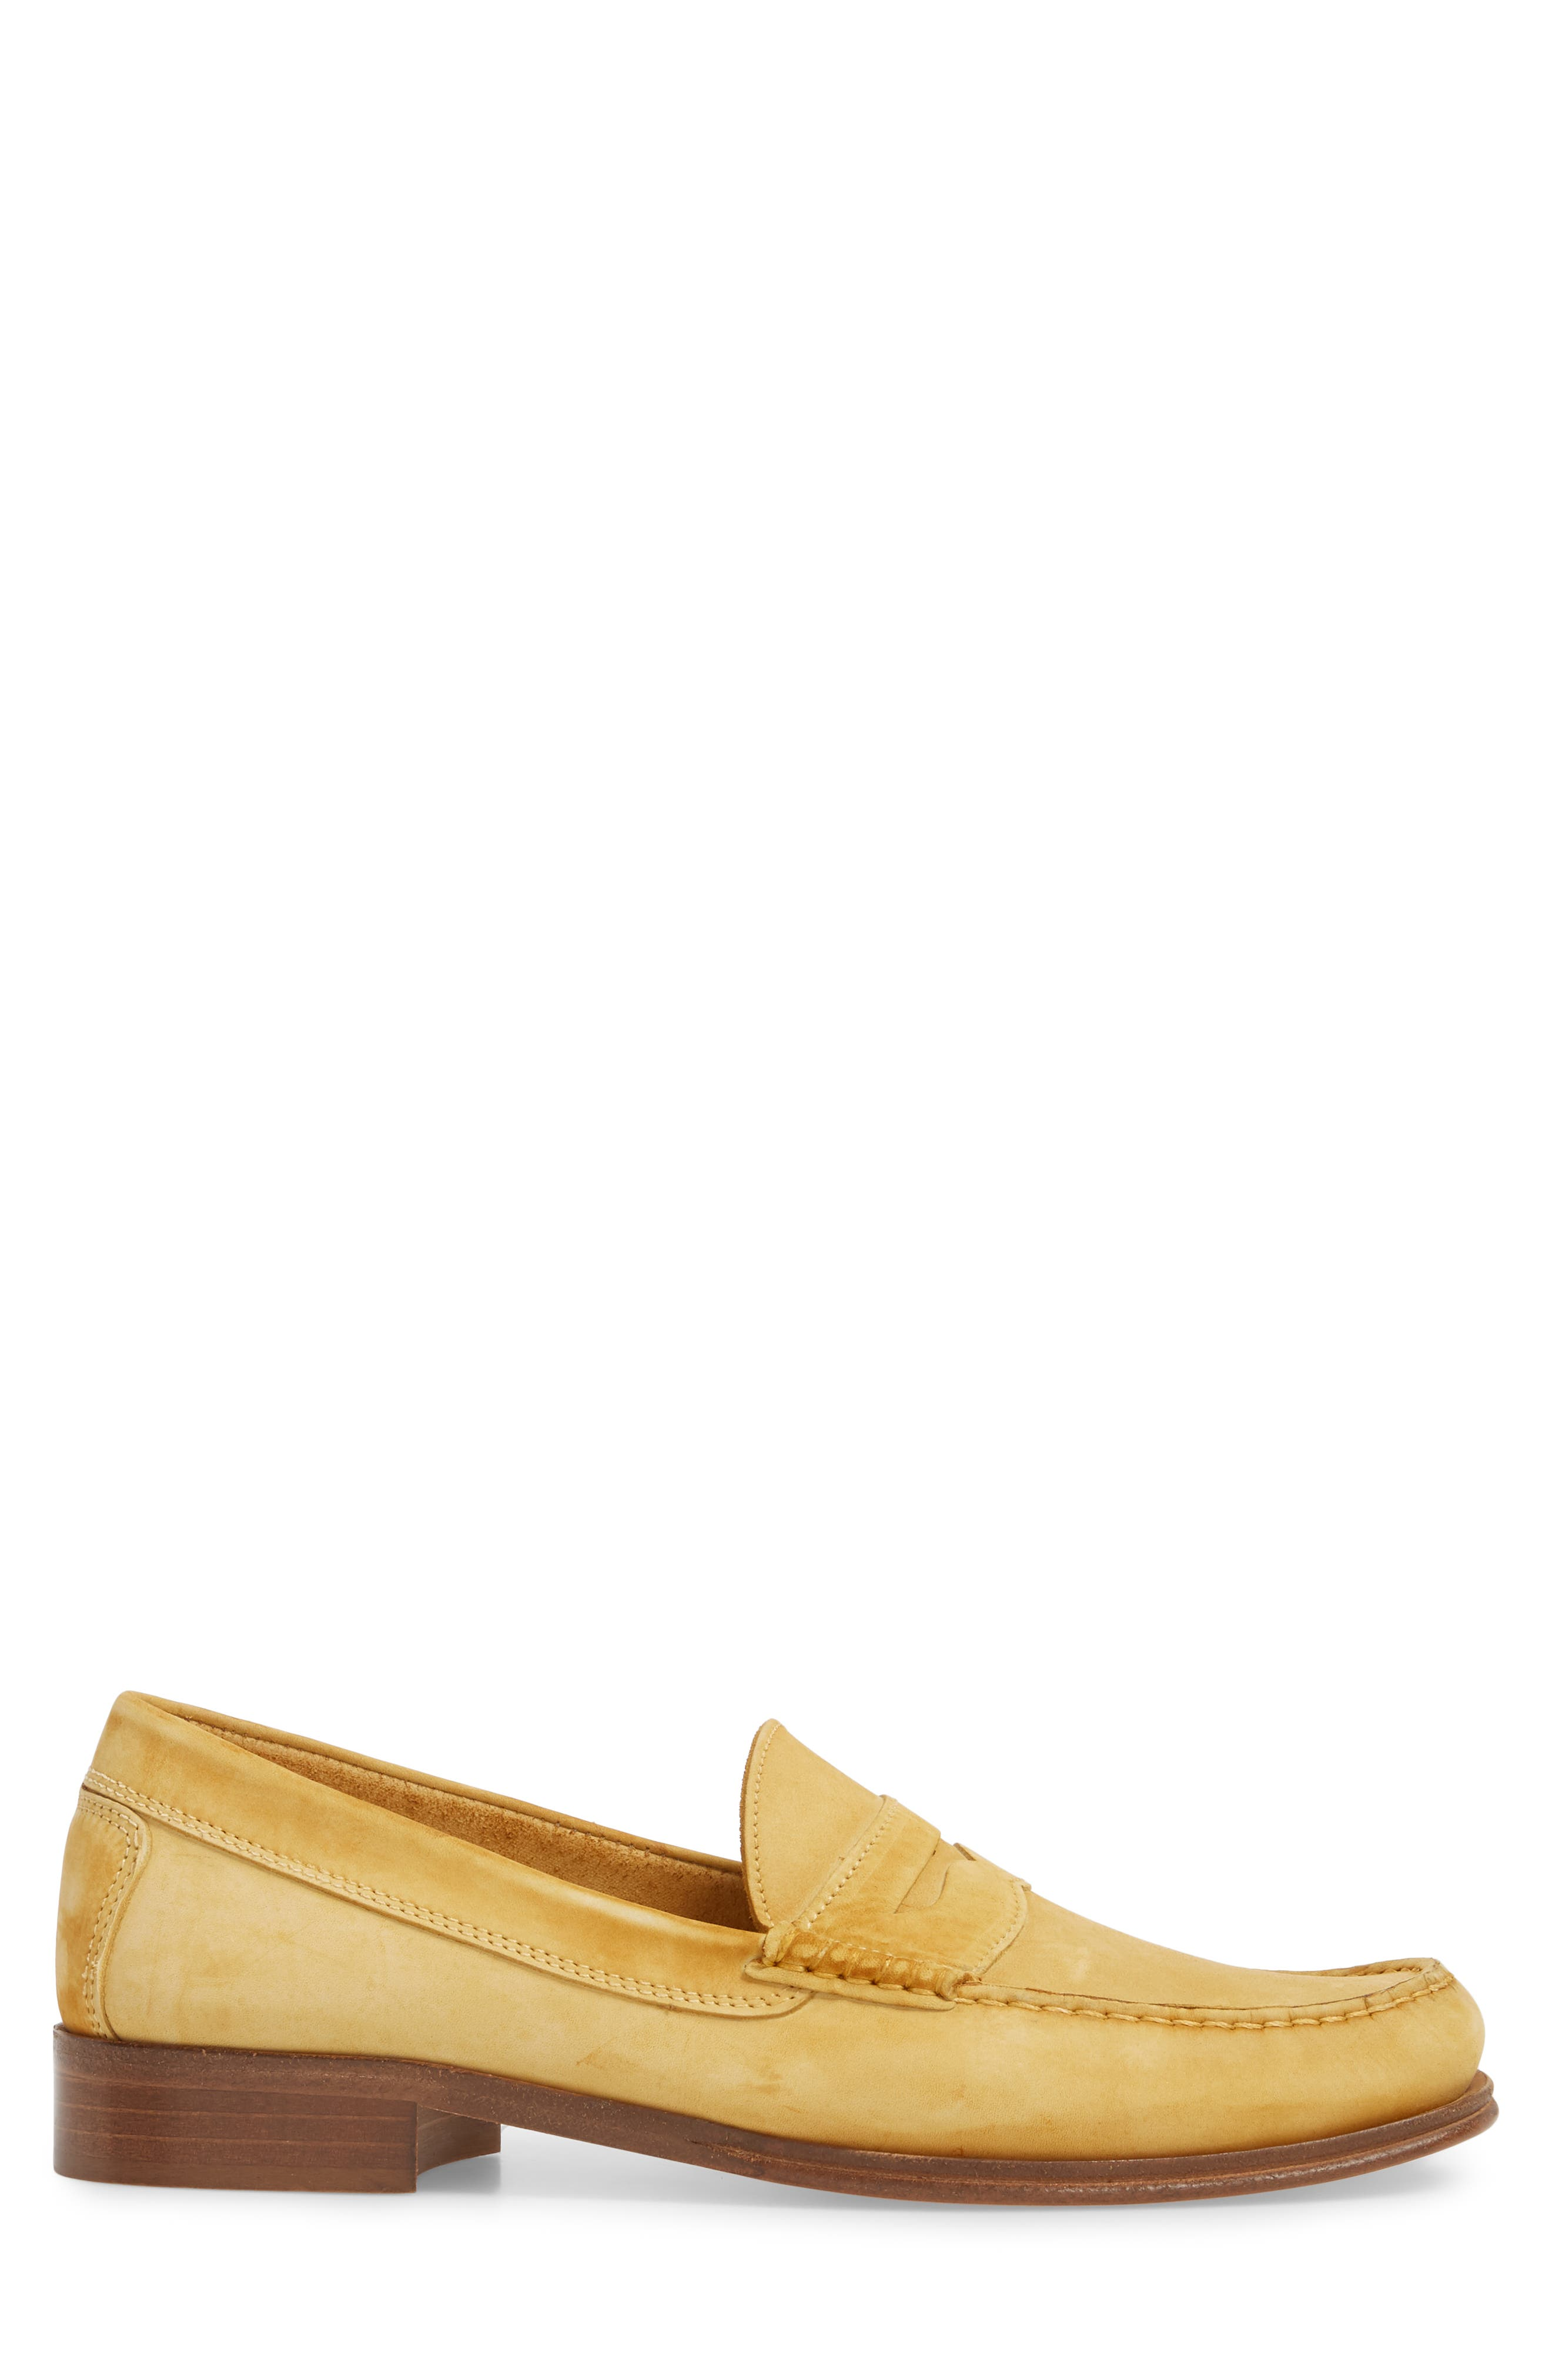 Nicola Penny Loafer,                             Alternate thumbnail 23, color,